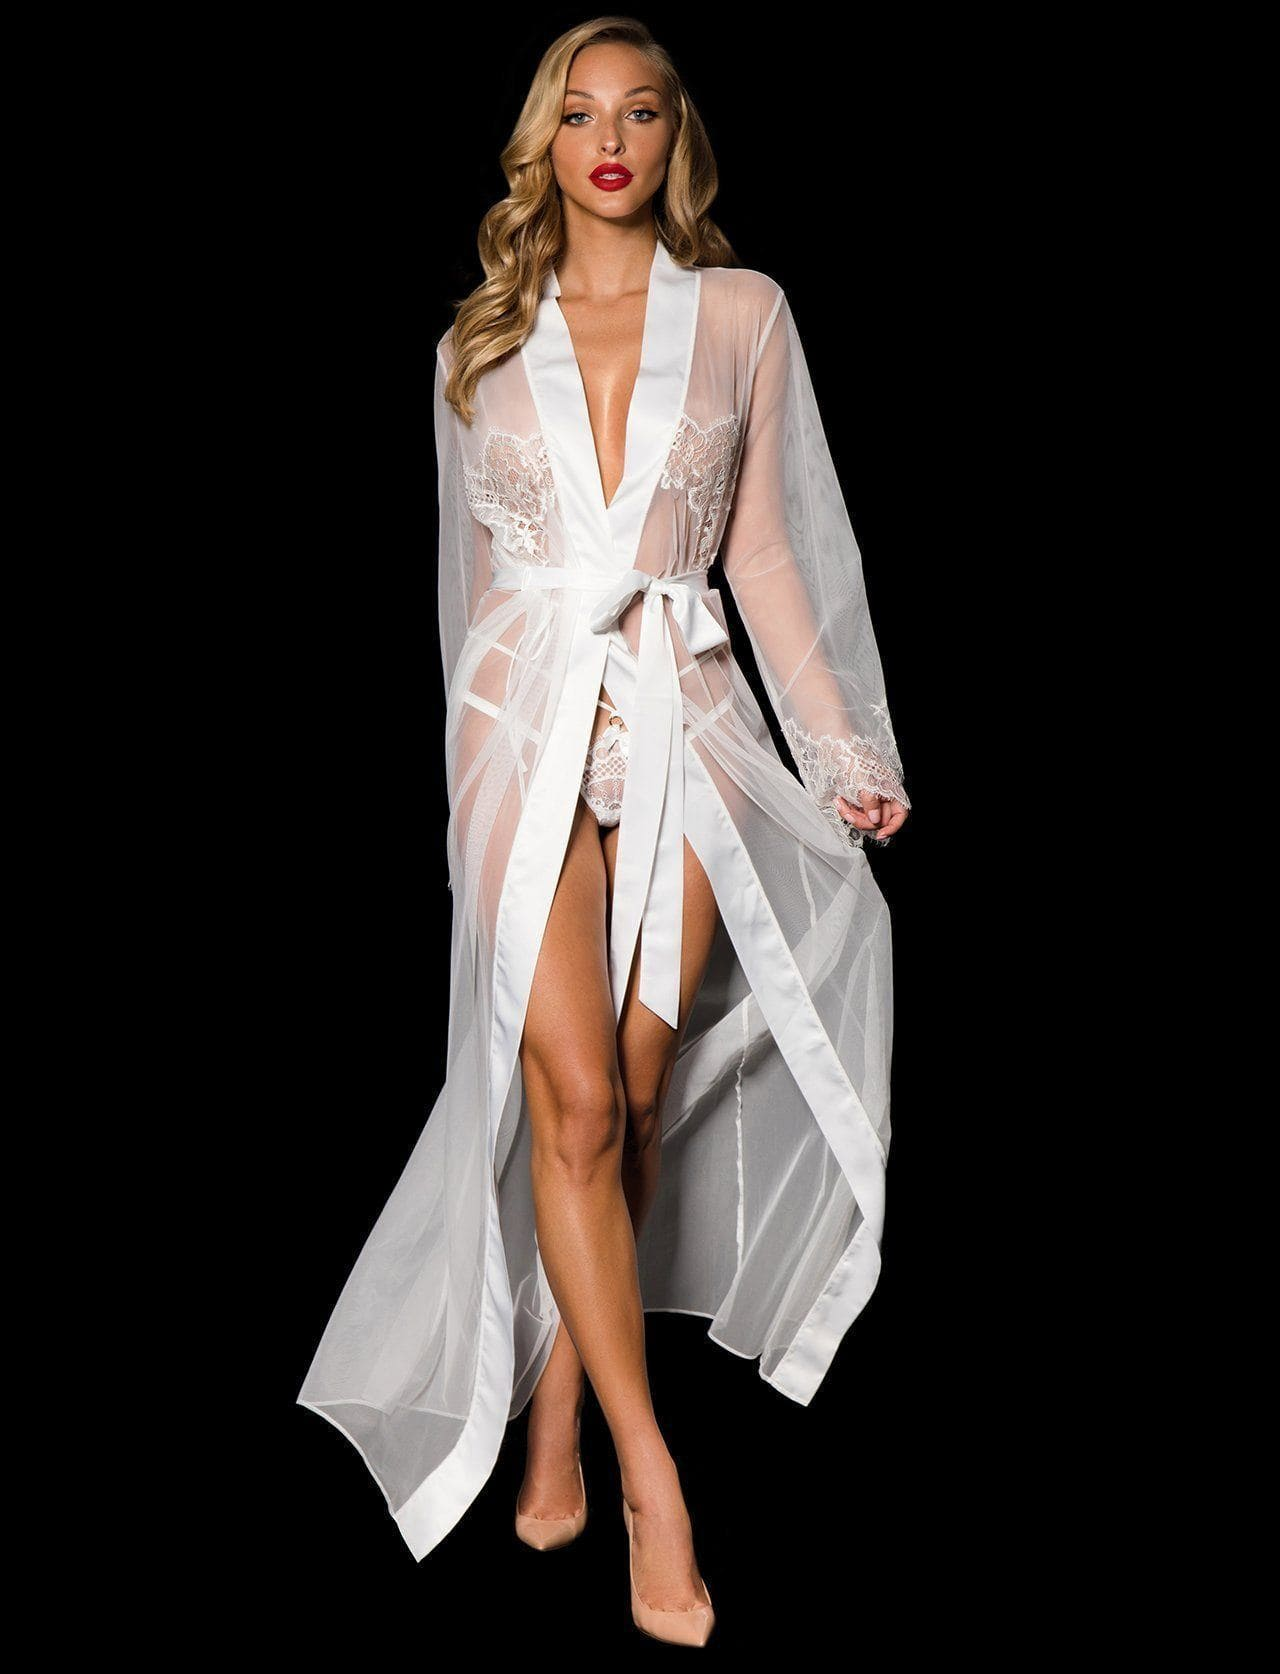 Jessica Ivory Robe - Shop Robe | Honey Birdette UK